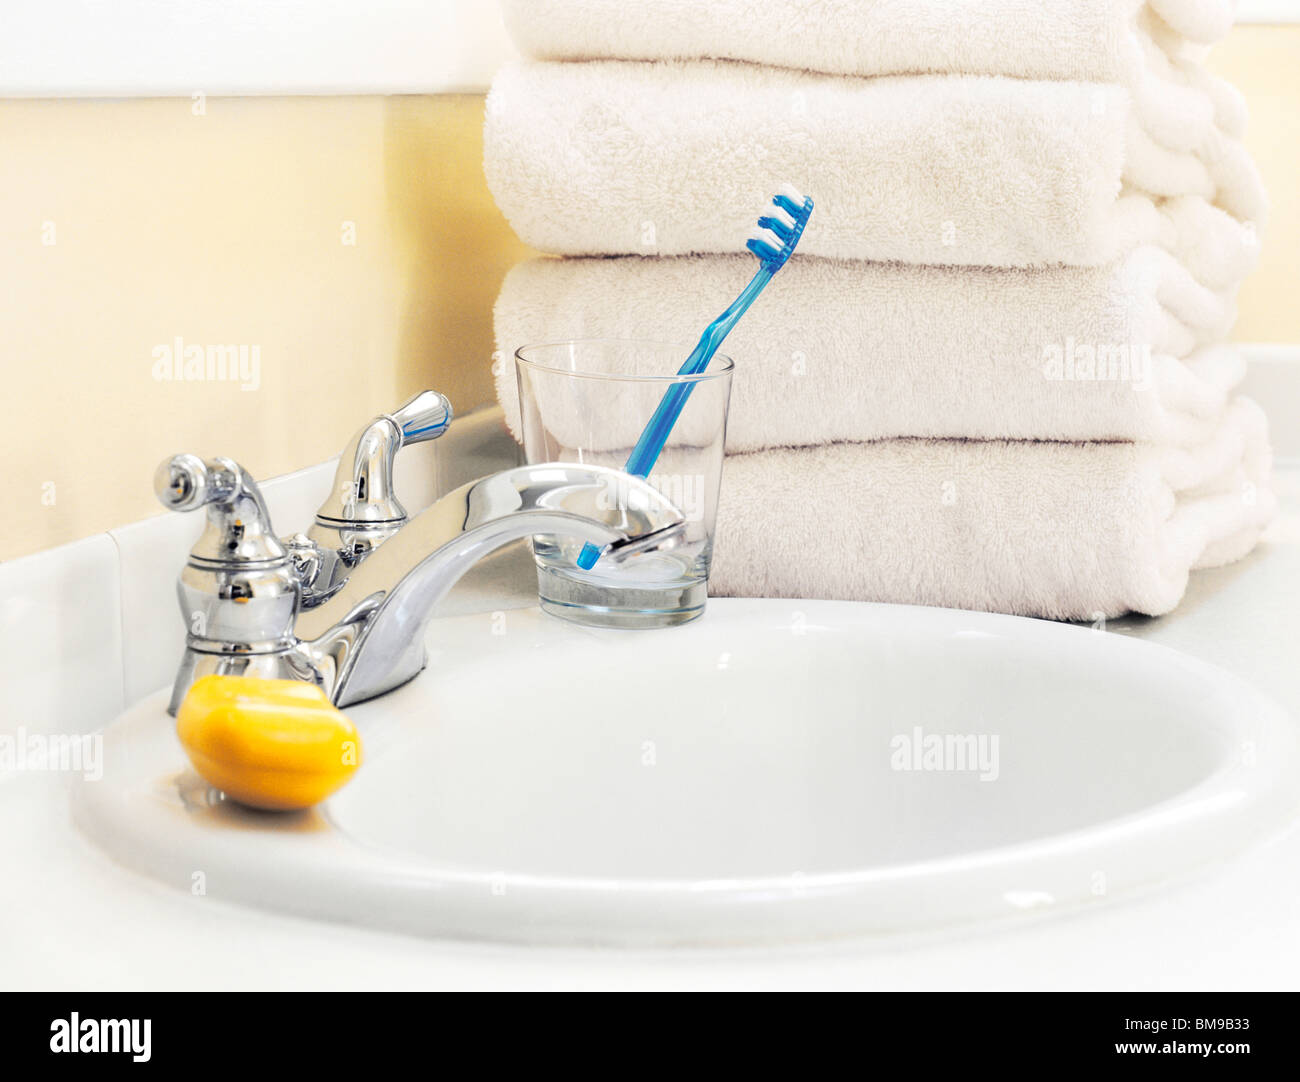 Close-up View of Bathroom sink and towels - Stock Image